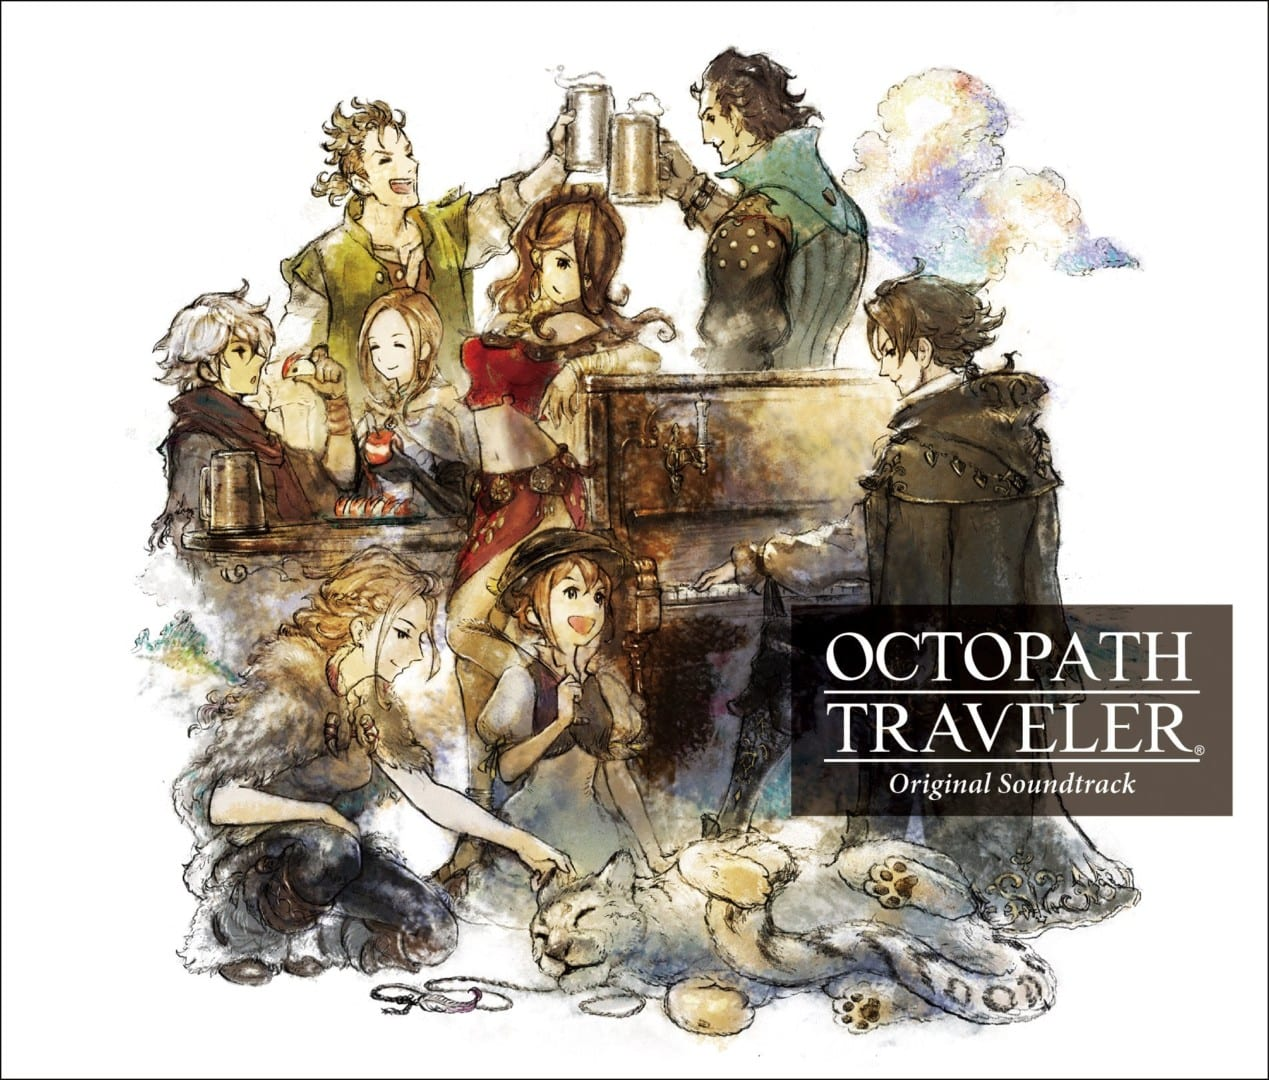 octopath traveler soundtrack